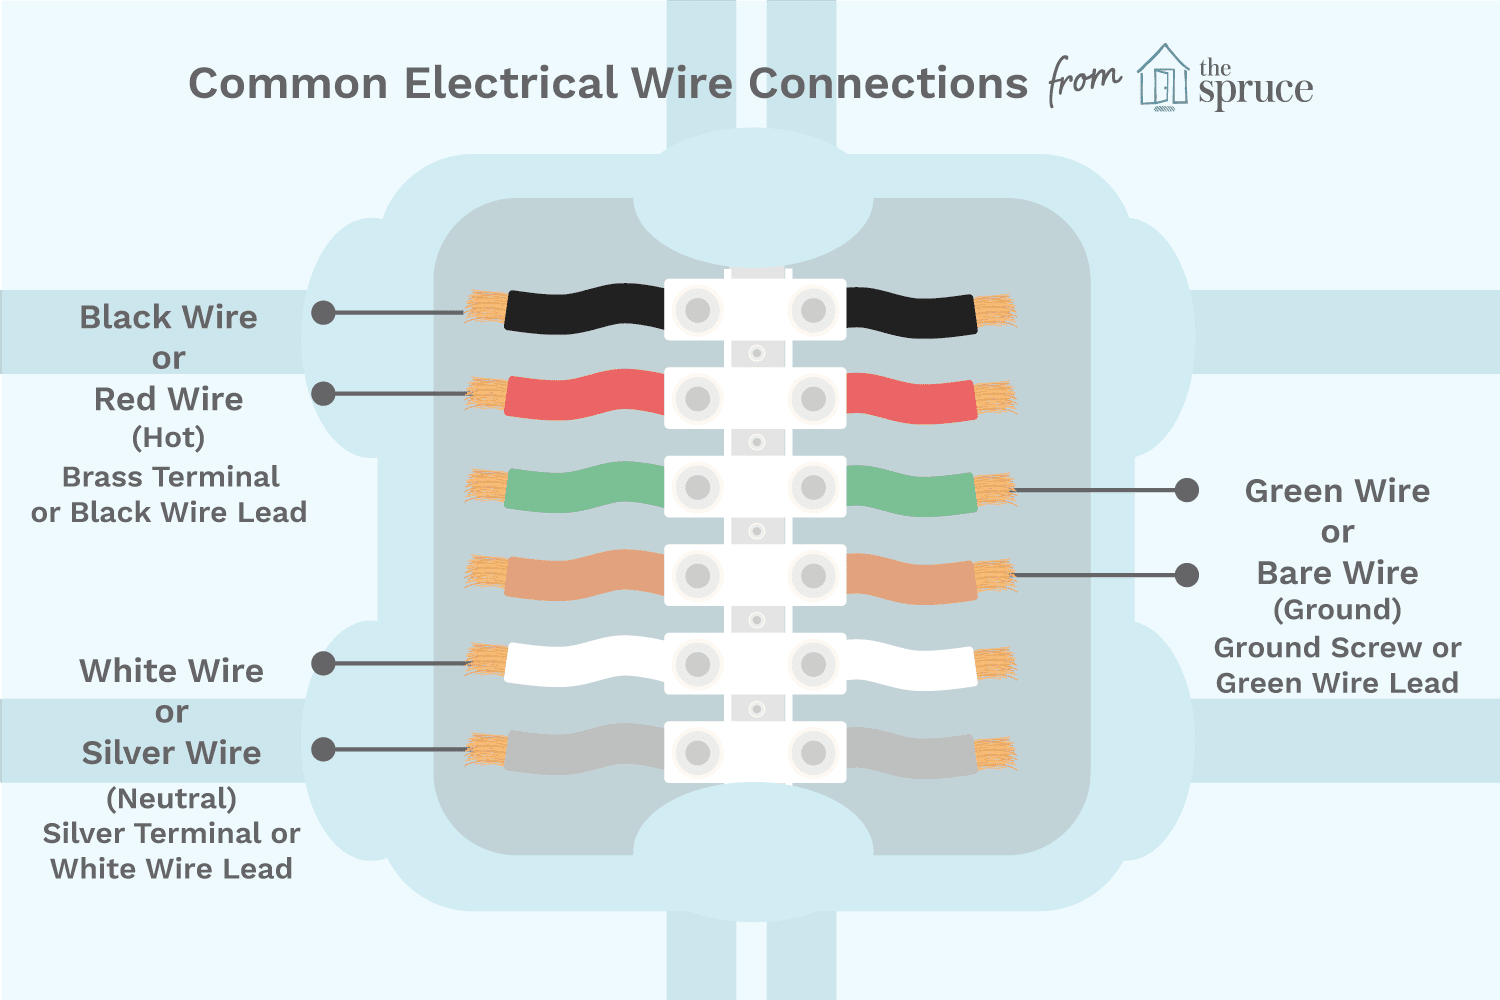 Color Coding Of Electrical Wires And Terminal Screws Old House Wiring To New Electric